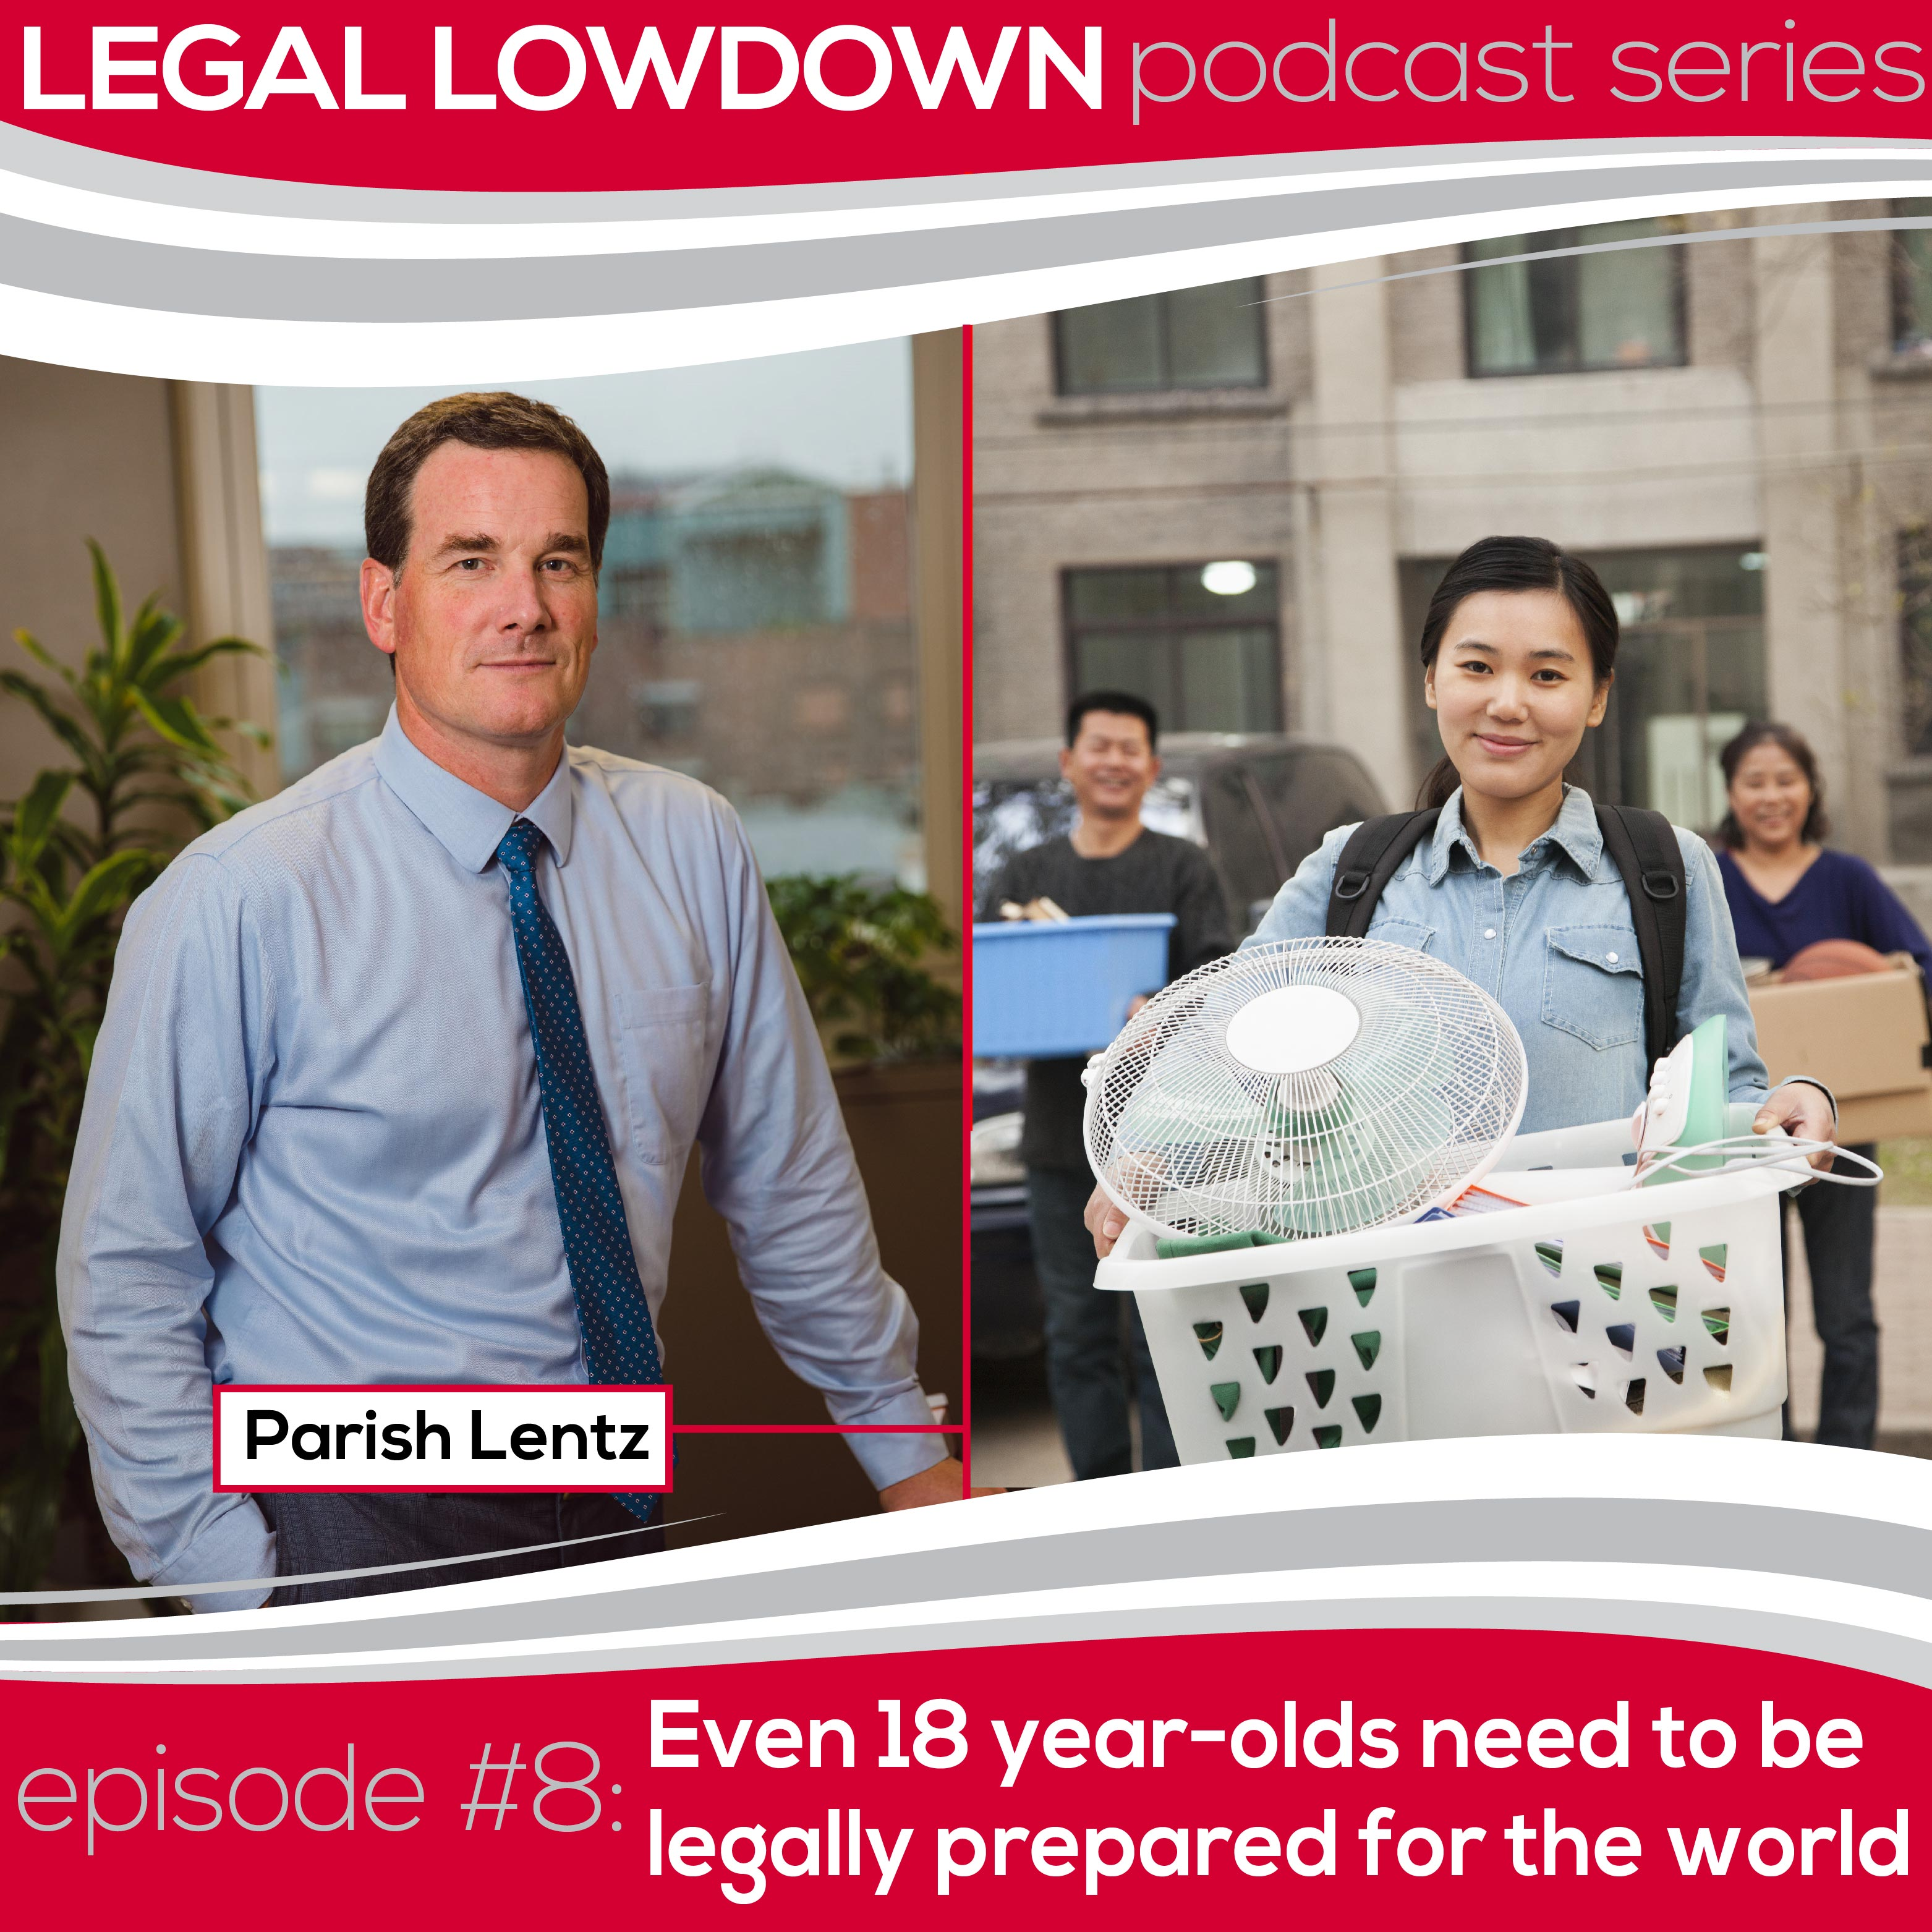 Legal podcast